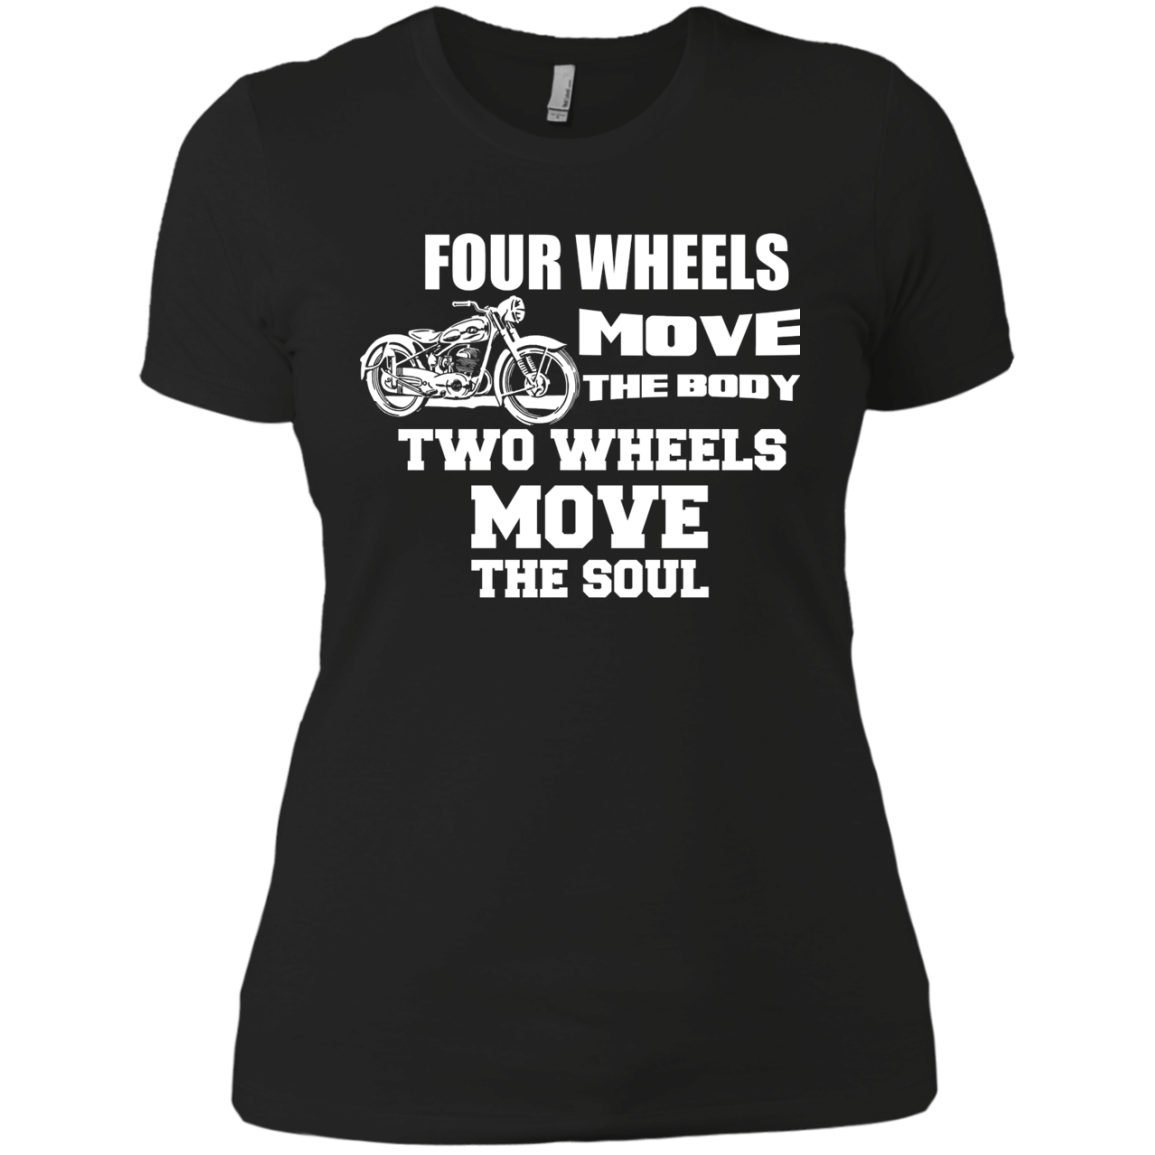 4 WHEELS MOVE THE BODY, 2 WHEELS MOVE THE SOUL T-Shirt & Hoodie - The Sun Cat